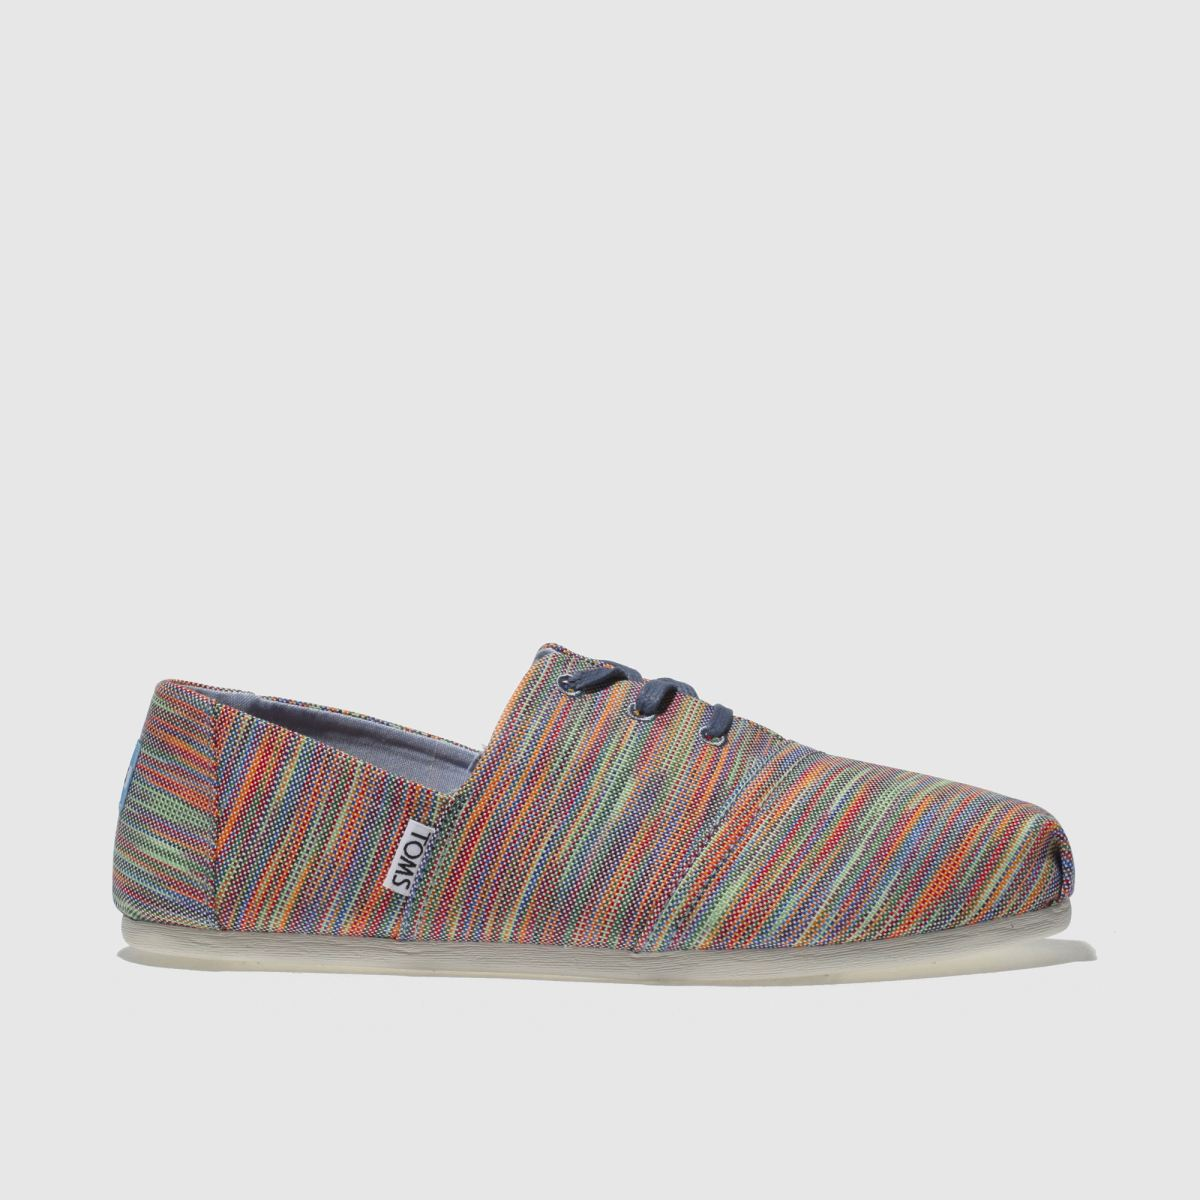 Toms Blue & Green Hermosa Flat Shoes